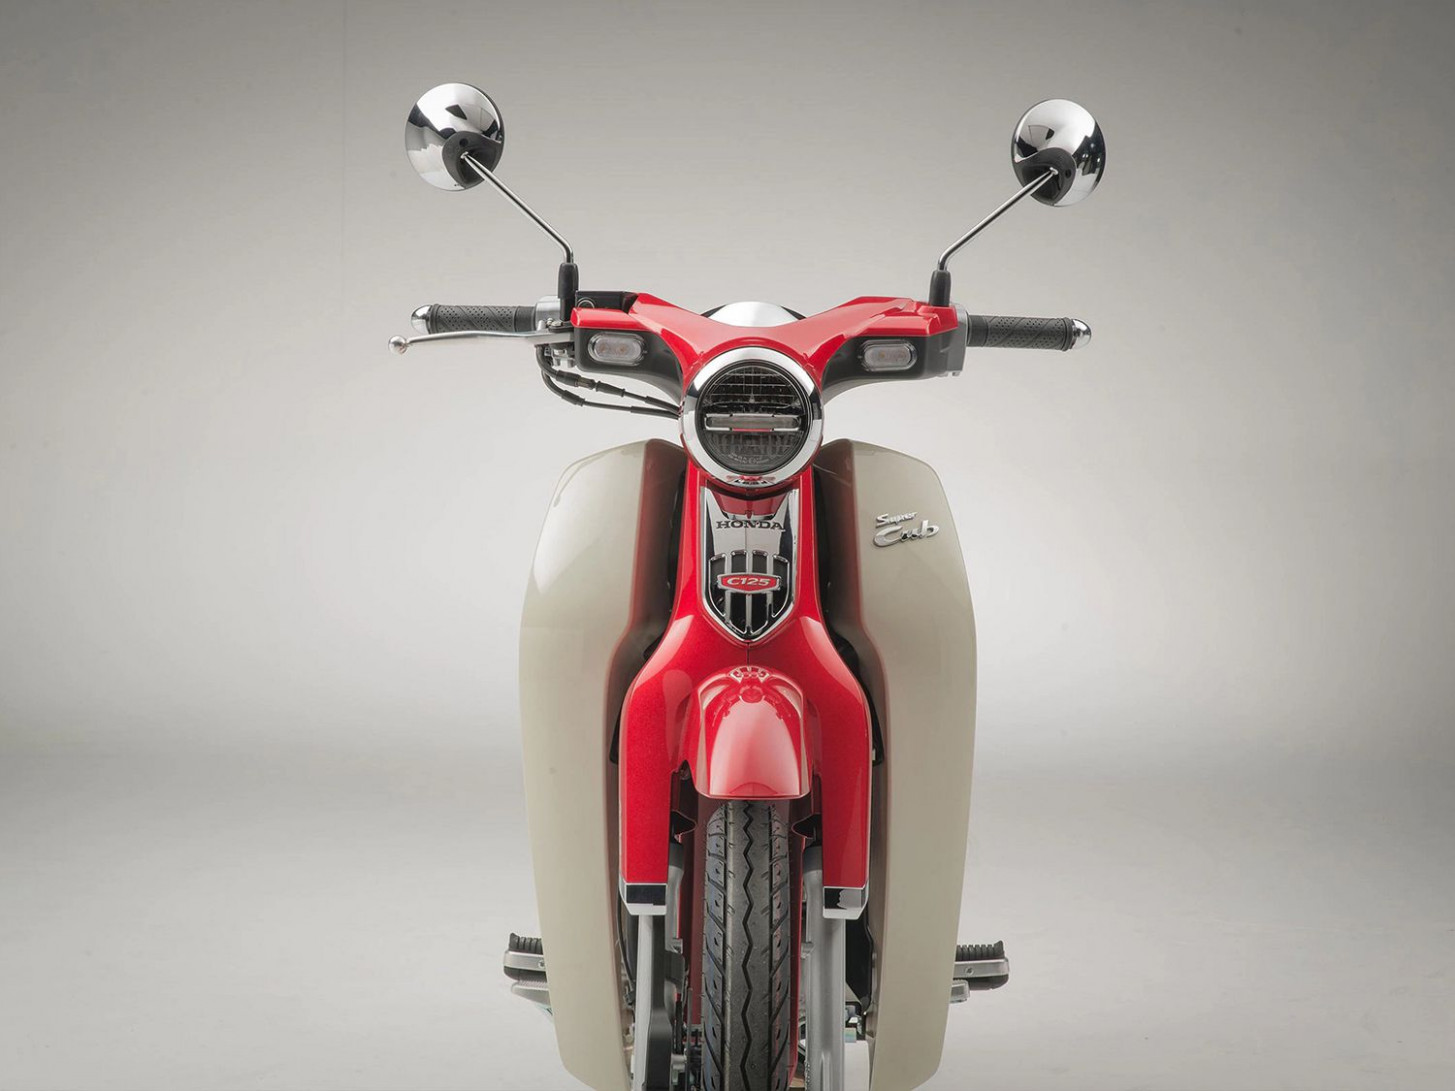 Honda Adds Super Cub And XR7L To 7 Lineup | Cycle World - 2020 honda super cub